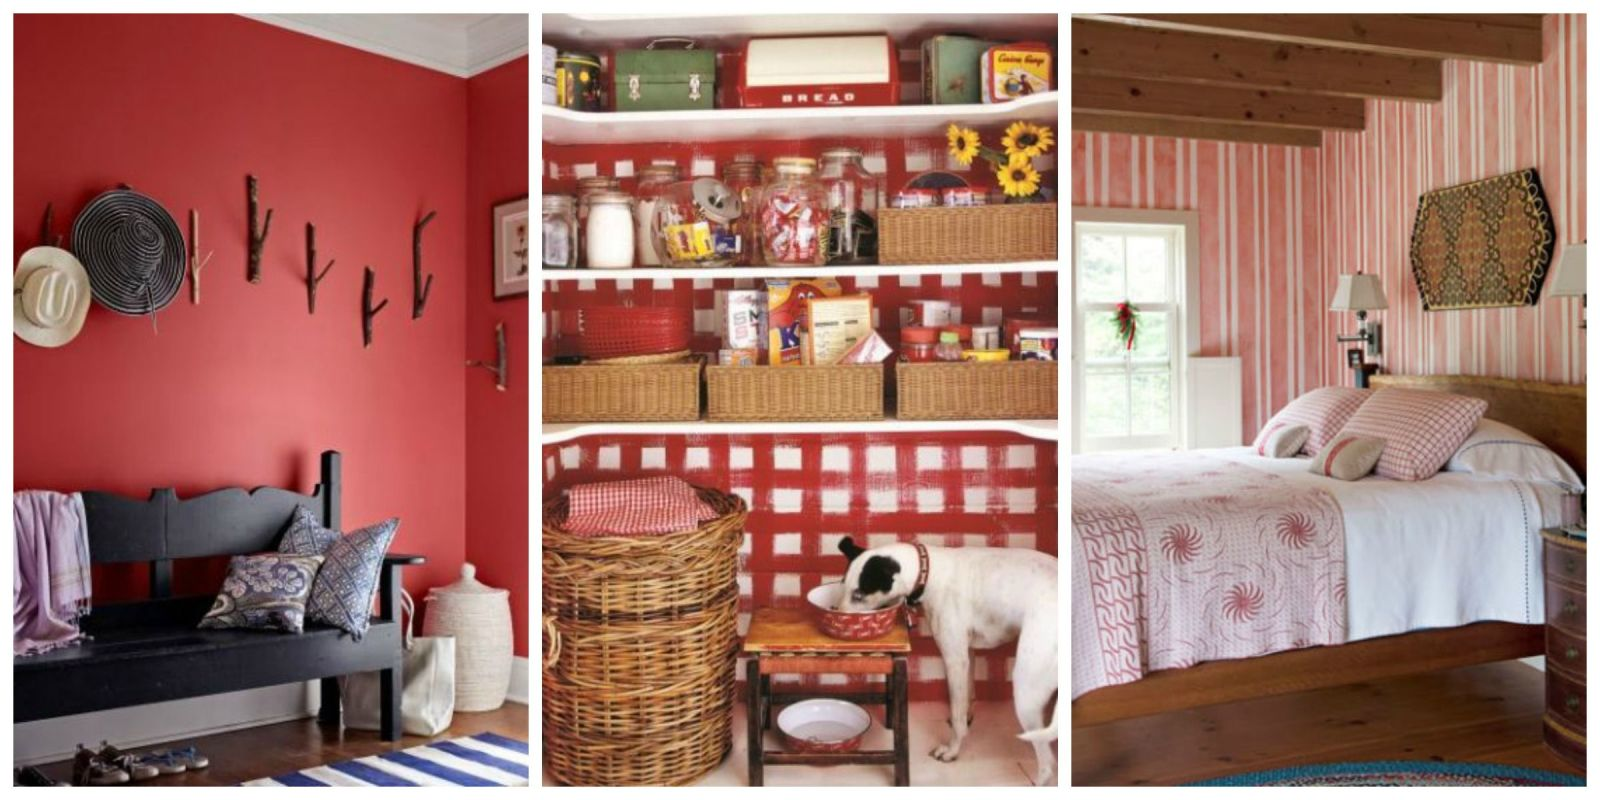 Red Room Decor Ideas Decorating With Red Ideas For Red Rooms And Home Decor